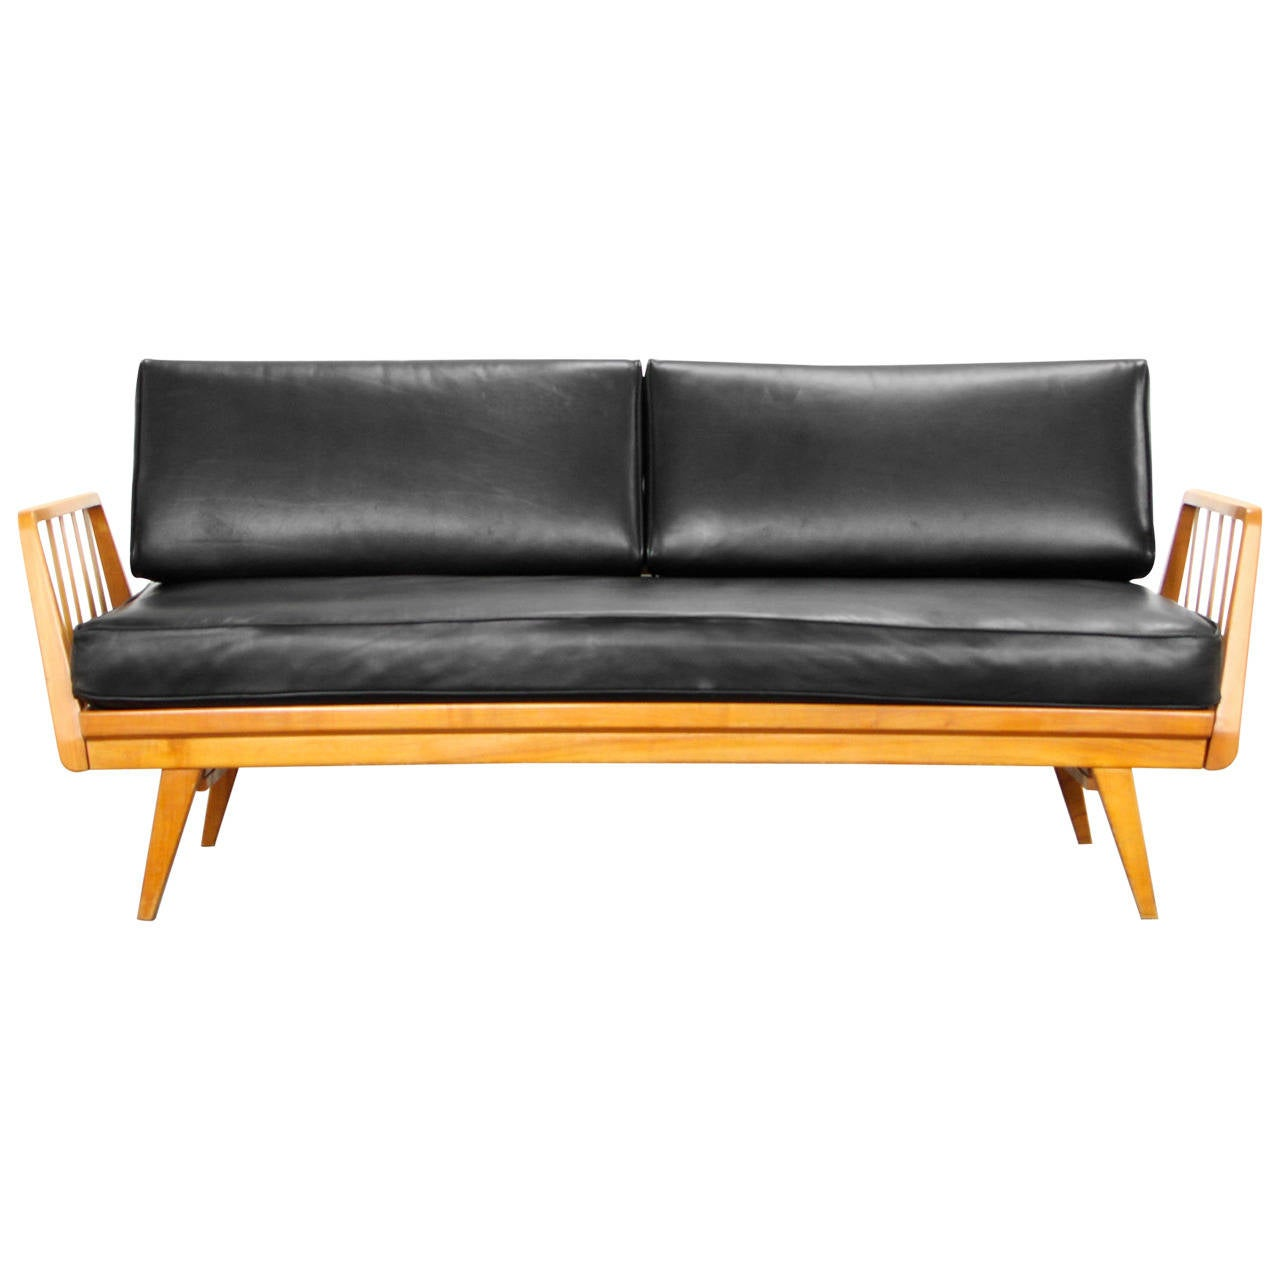 Cherry and leather sofa by knoll antimott mid century for Mid century modern leather chairs